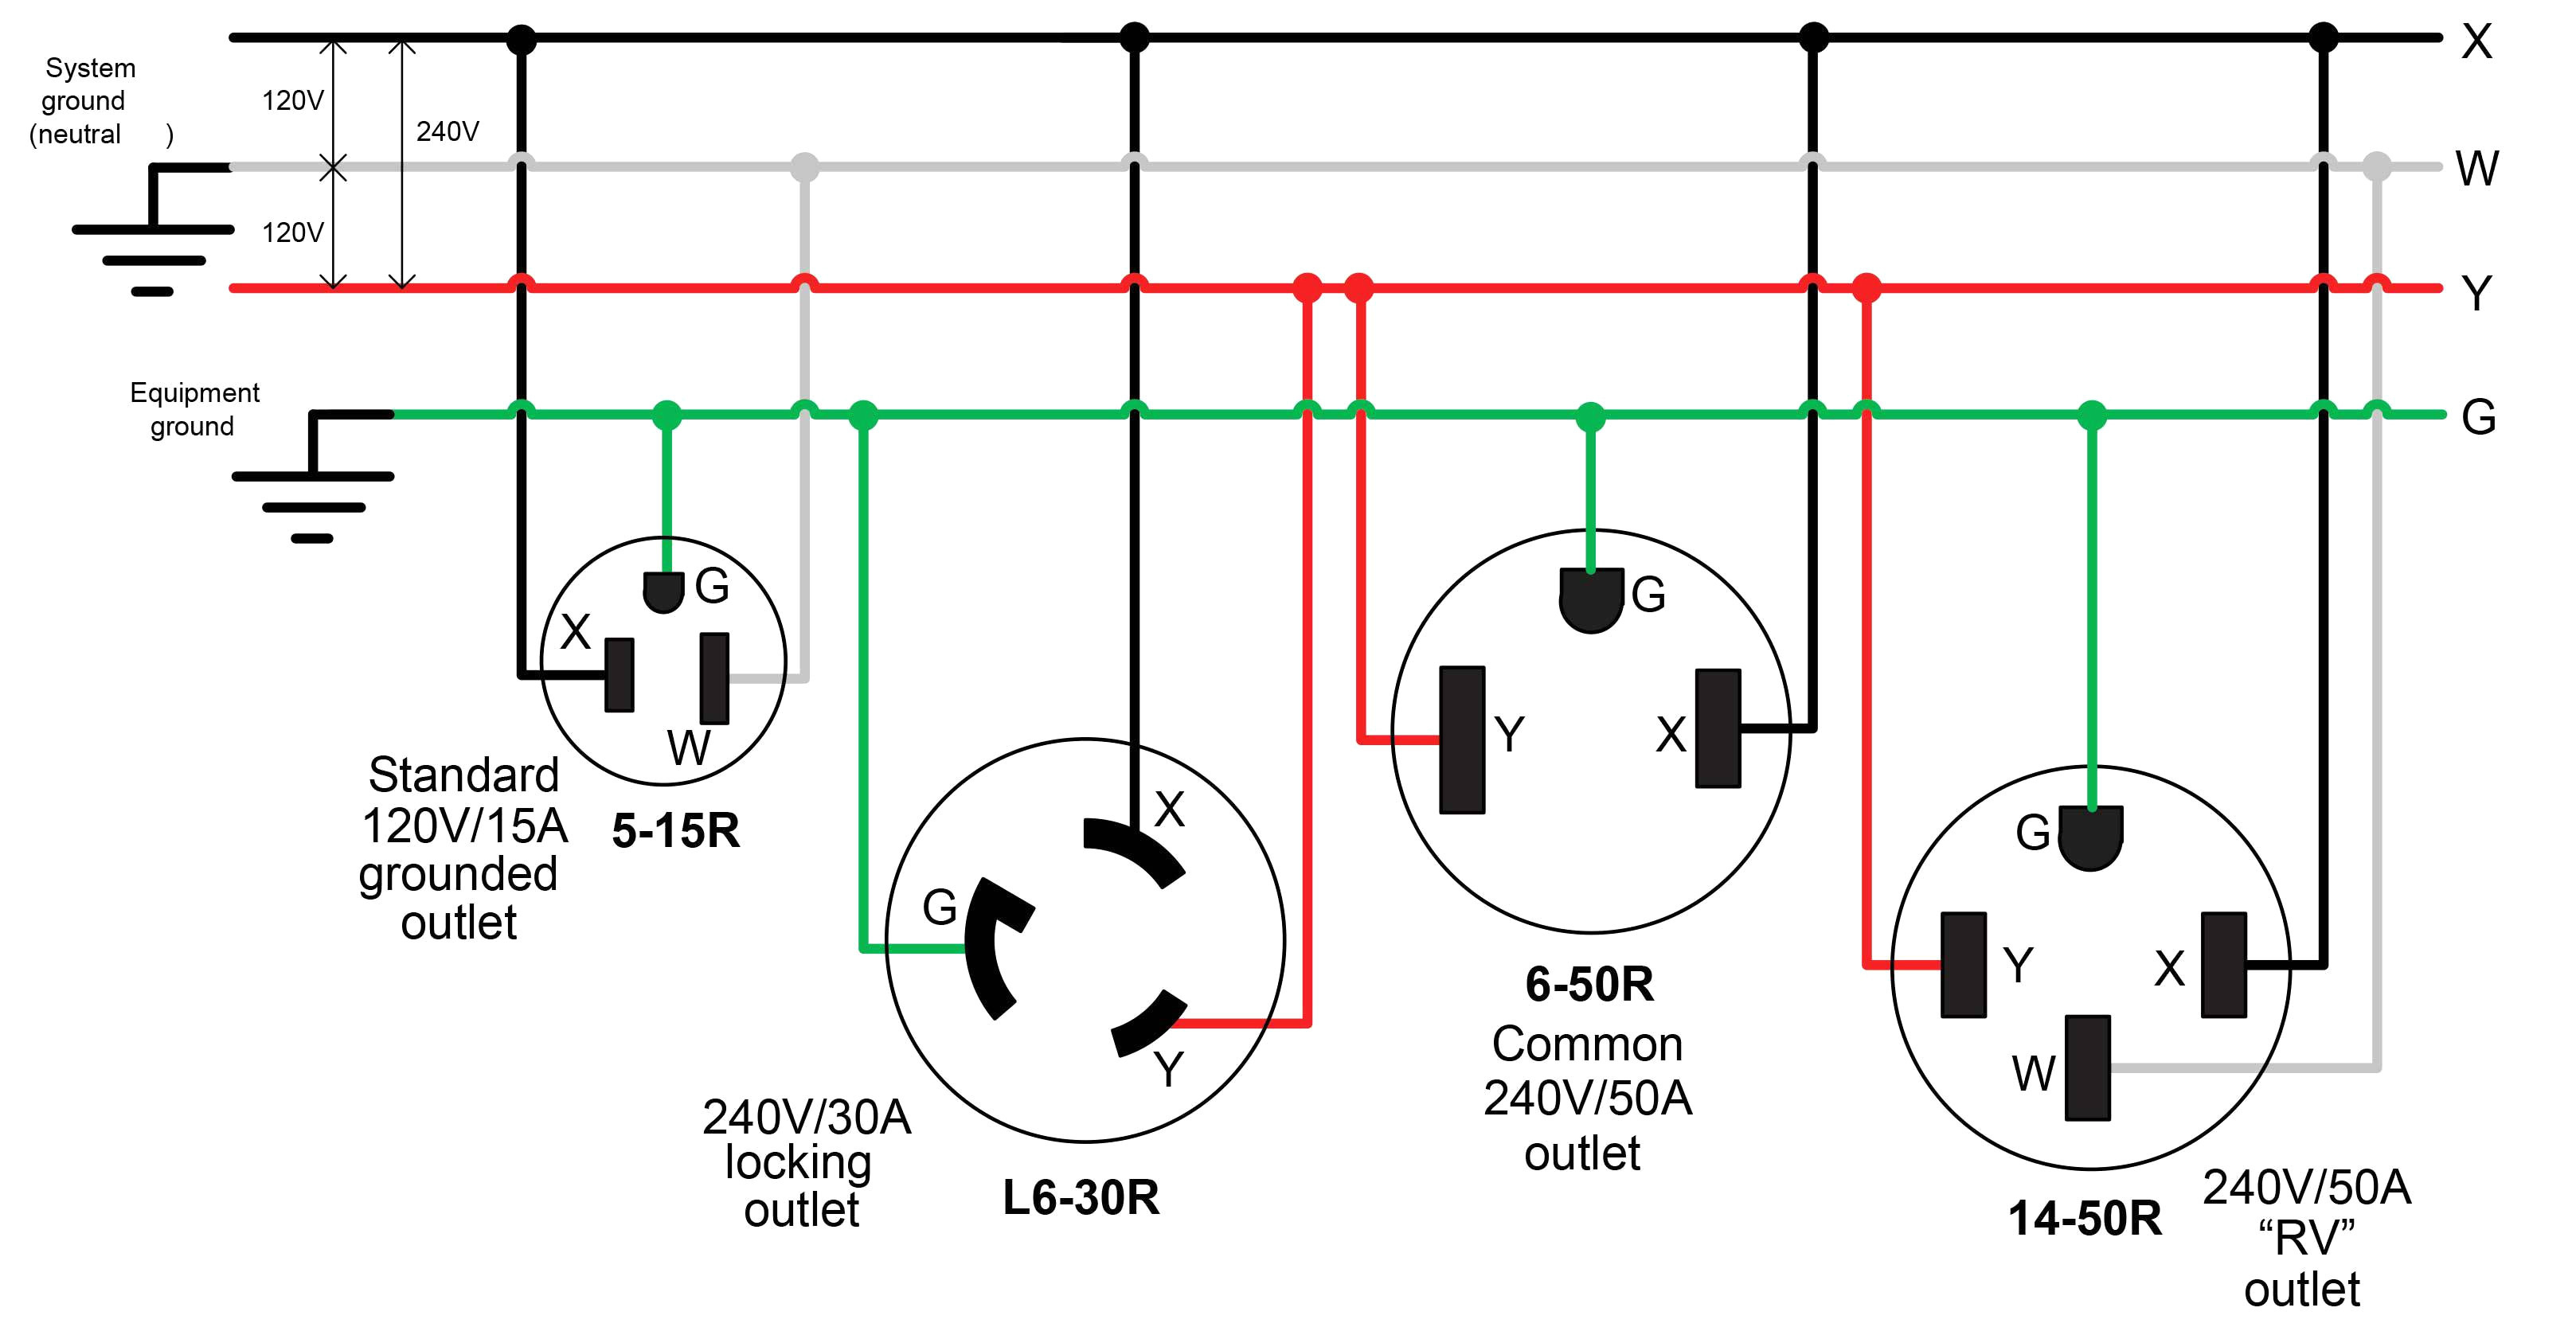 20 amp plug wiring diagram Collection-Wiring Diagram 30 Amp Relay Best 30 Amp Twist Lock Plug Wiring Diagram Coachedby Me Fancy 18-d